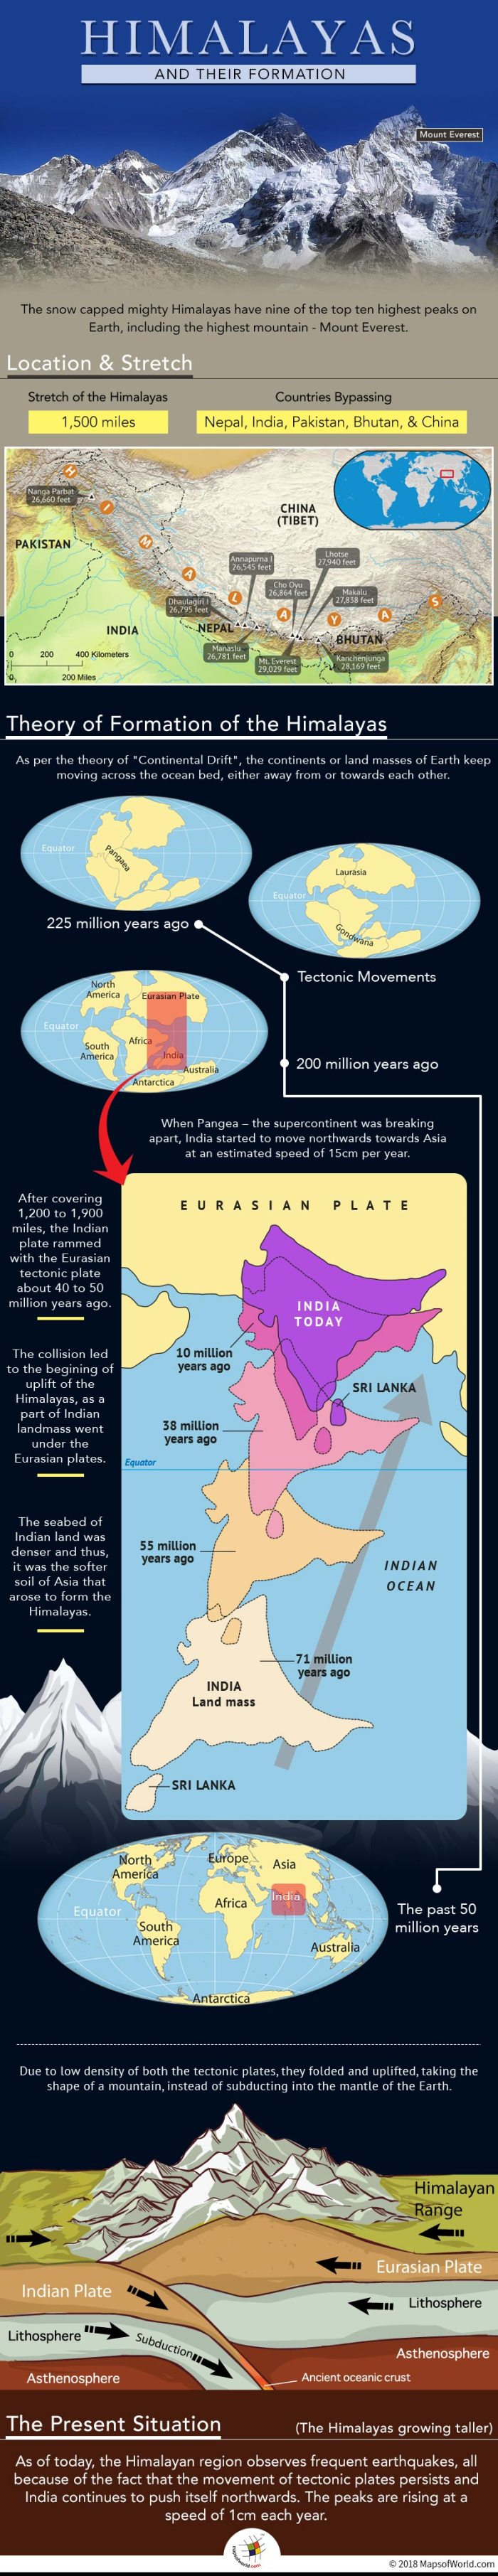 Infographic elaborating formation of Himalayas